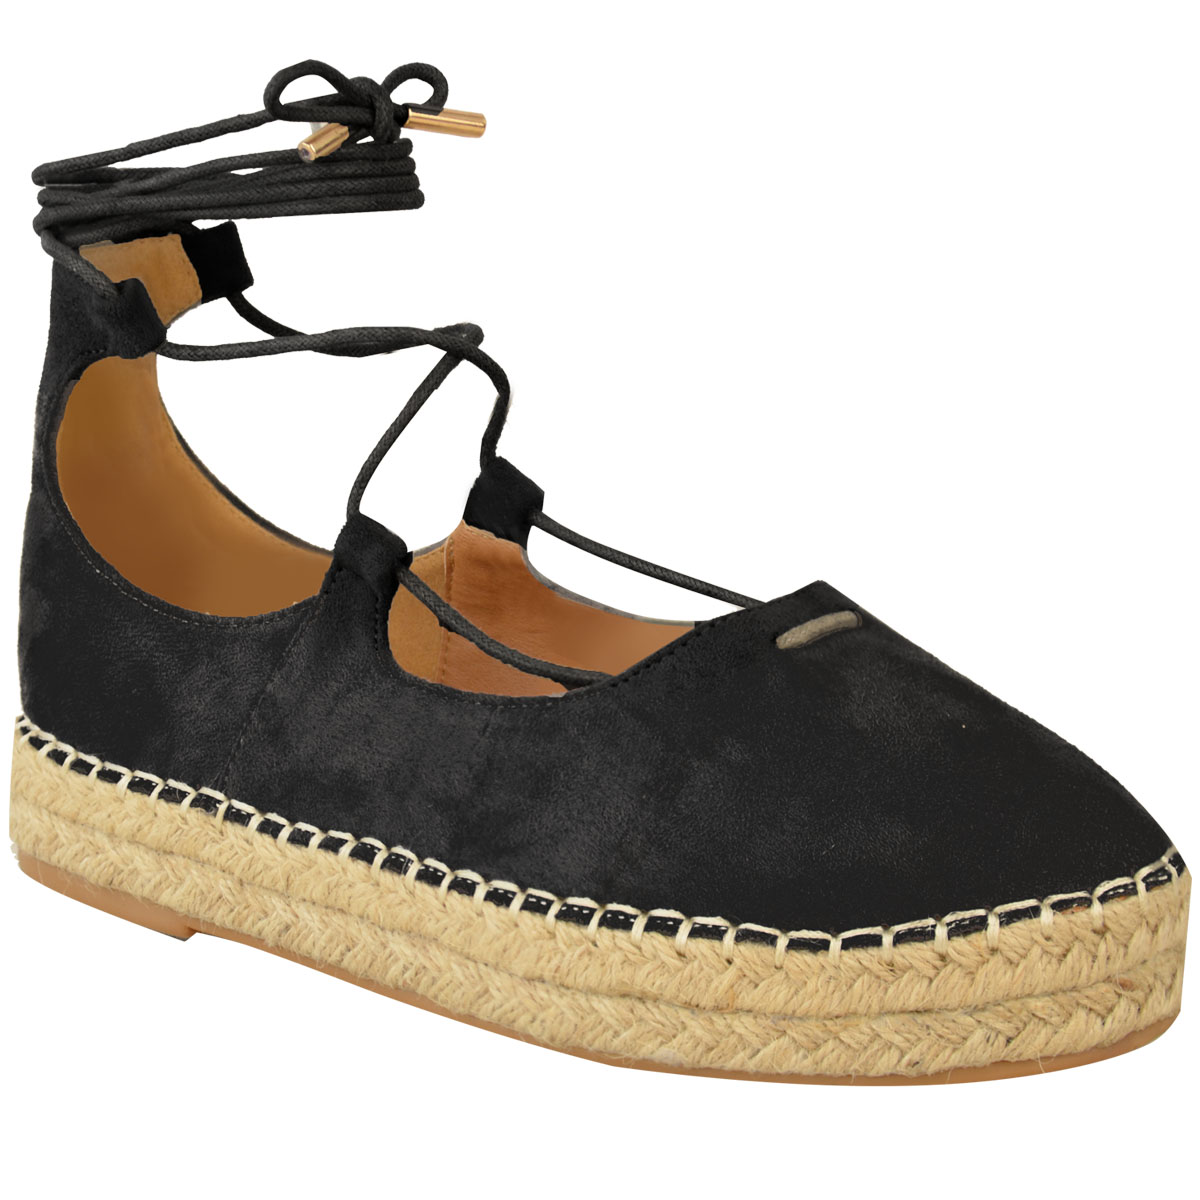 womens ladies strappy espadrilles lace up sandals flat summer holiday shoes size ebay. Black Bedroom Furniture Sets. Home Design Ideas